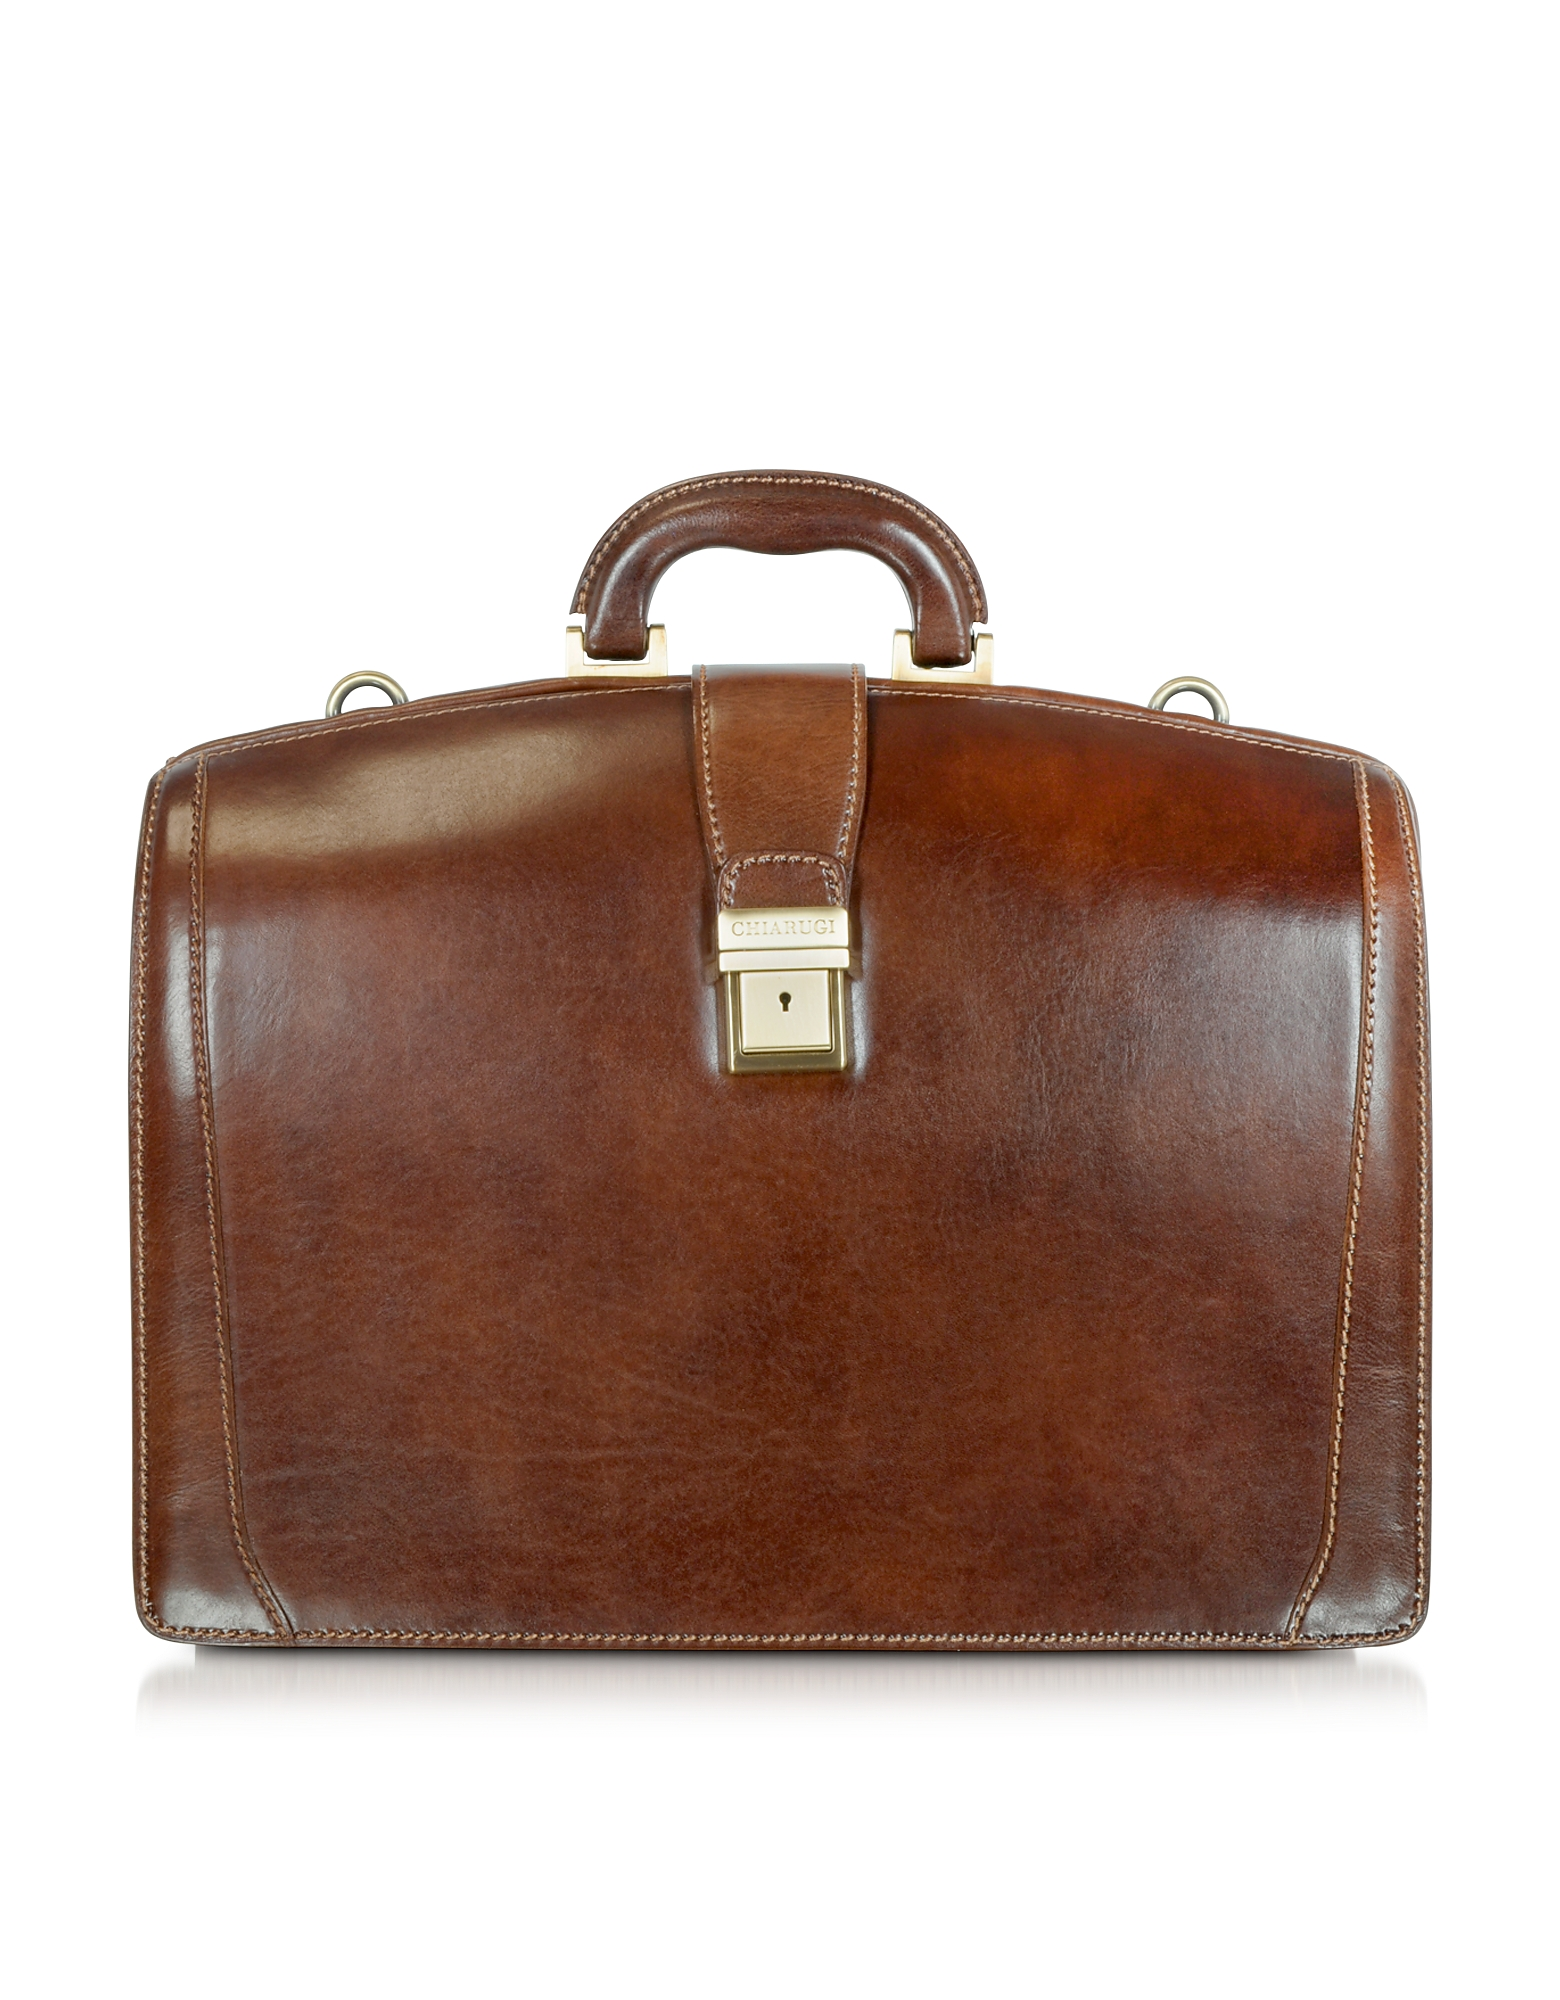 Chiarugi Designer Briefcases, Brown Leather Buckled Diplomatic Briefcase